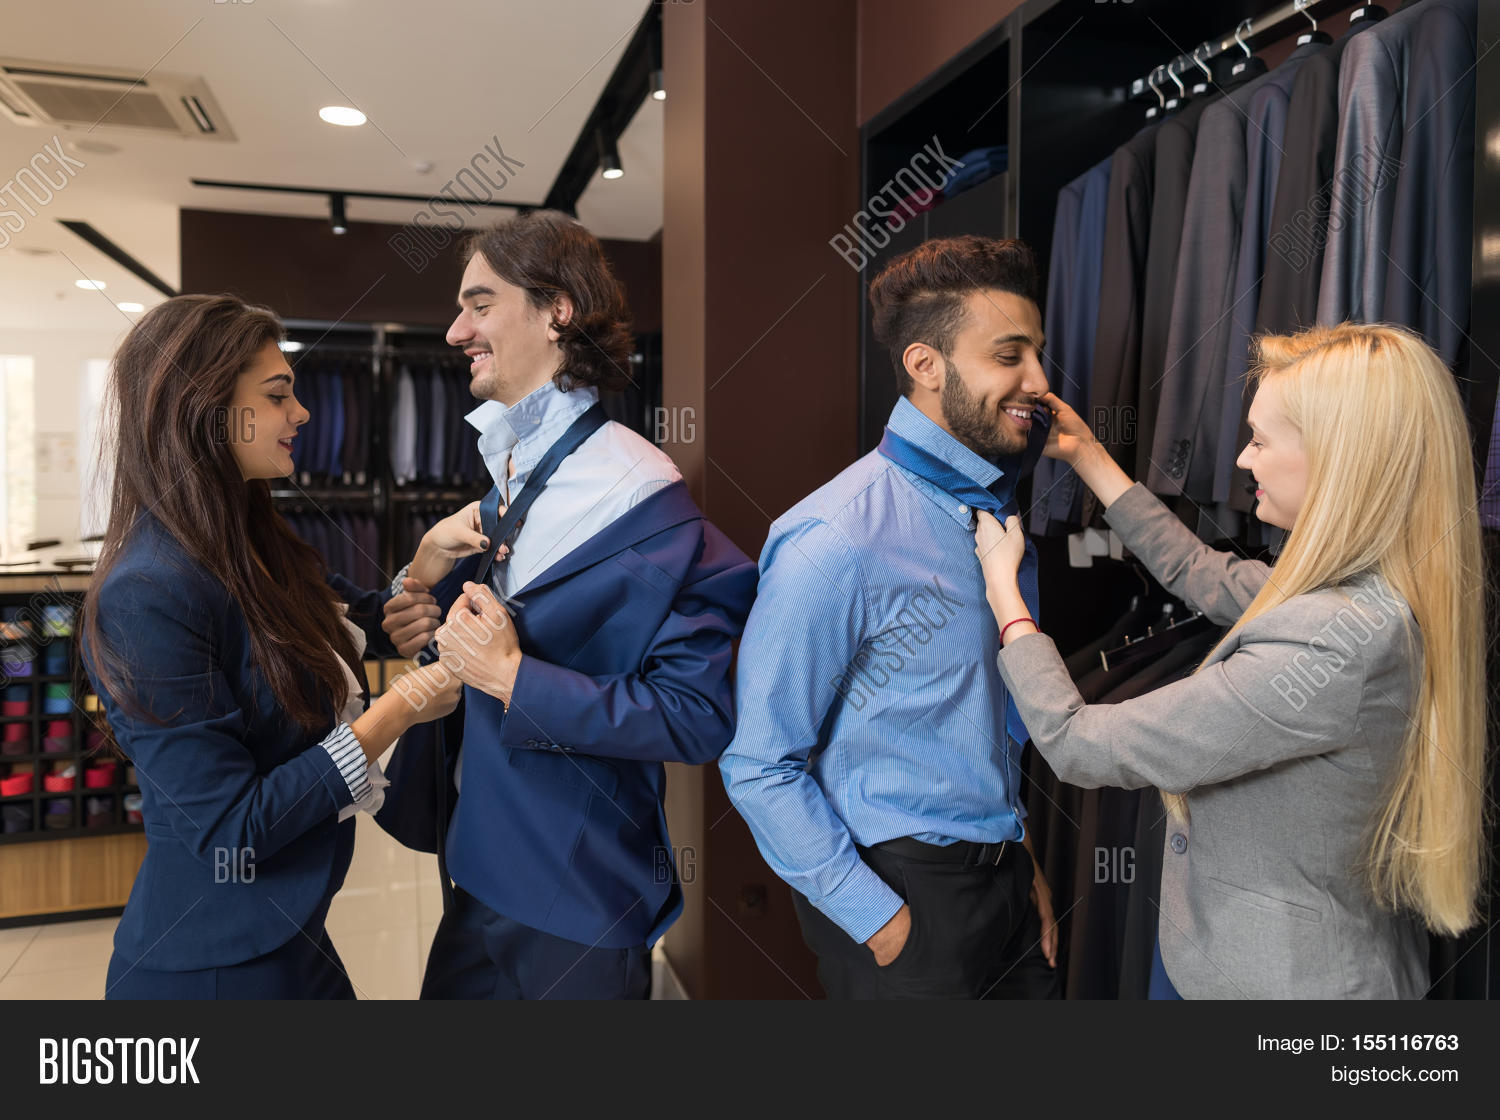 handsome business man trying suit clothes w assistant help handsome business man trying suit clothes w assistant help knotting the necktie fashion shop customers